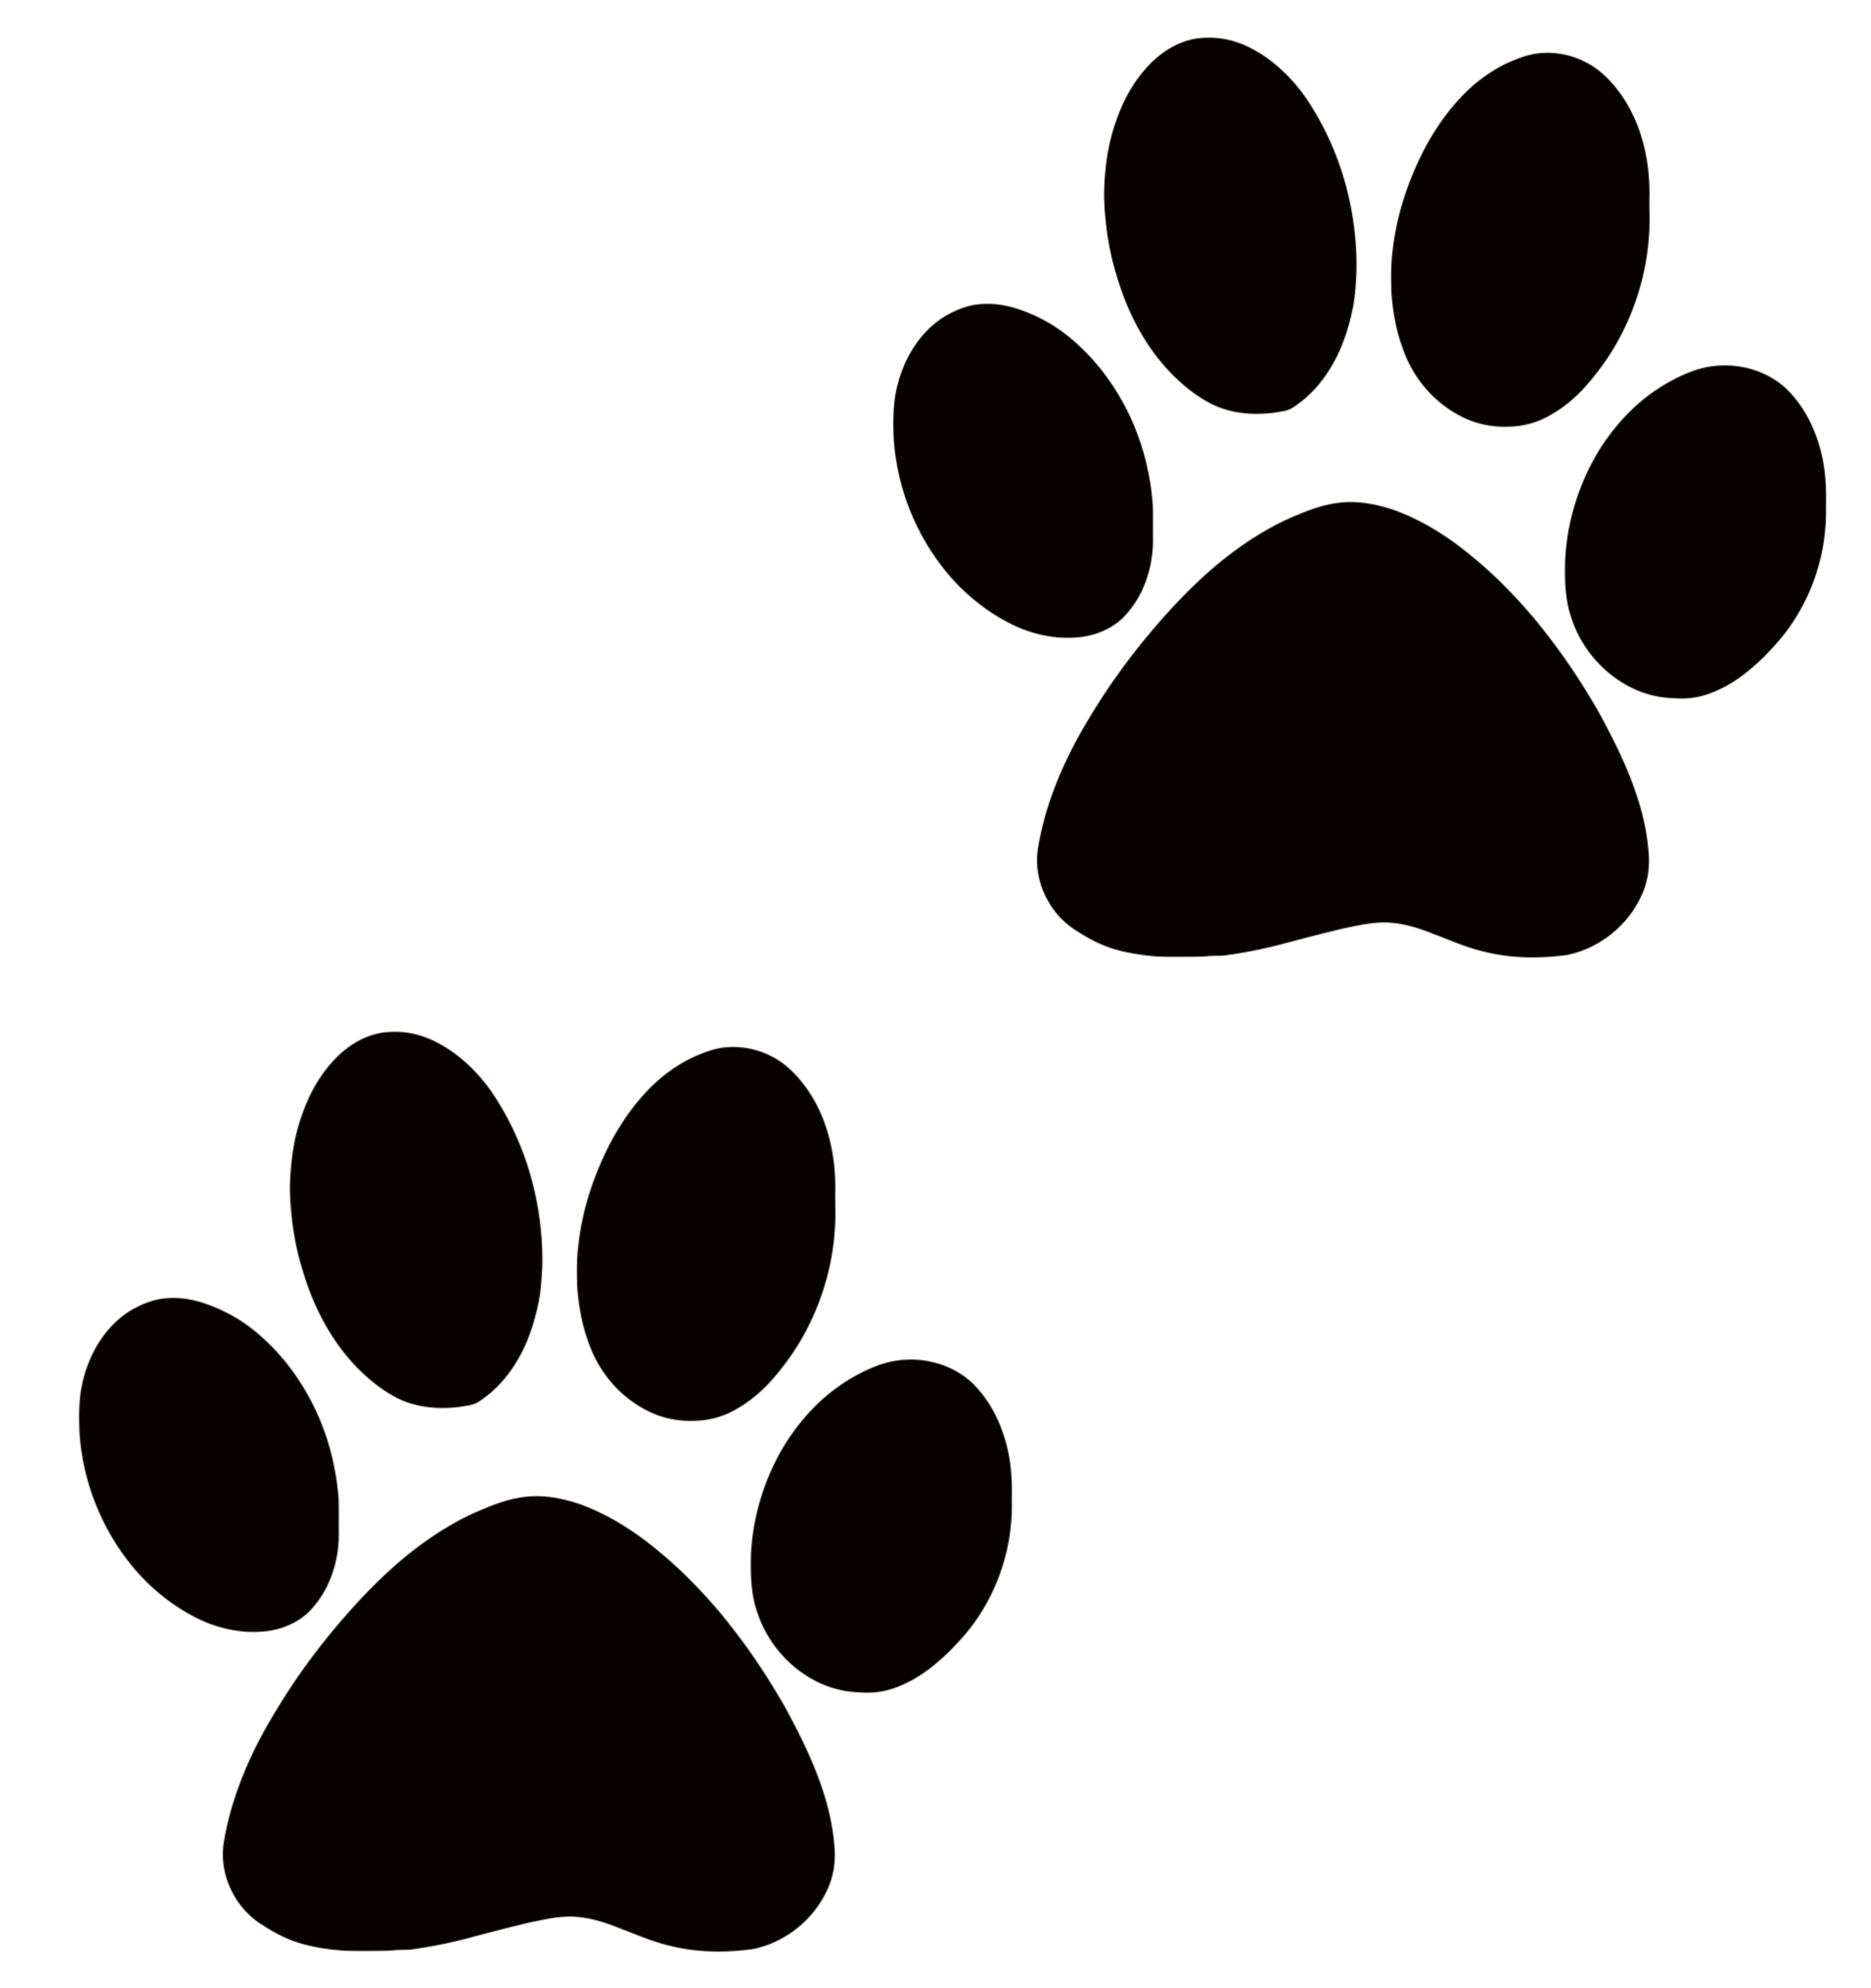 Tiger paw print background - photo#6